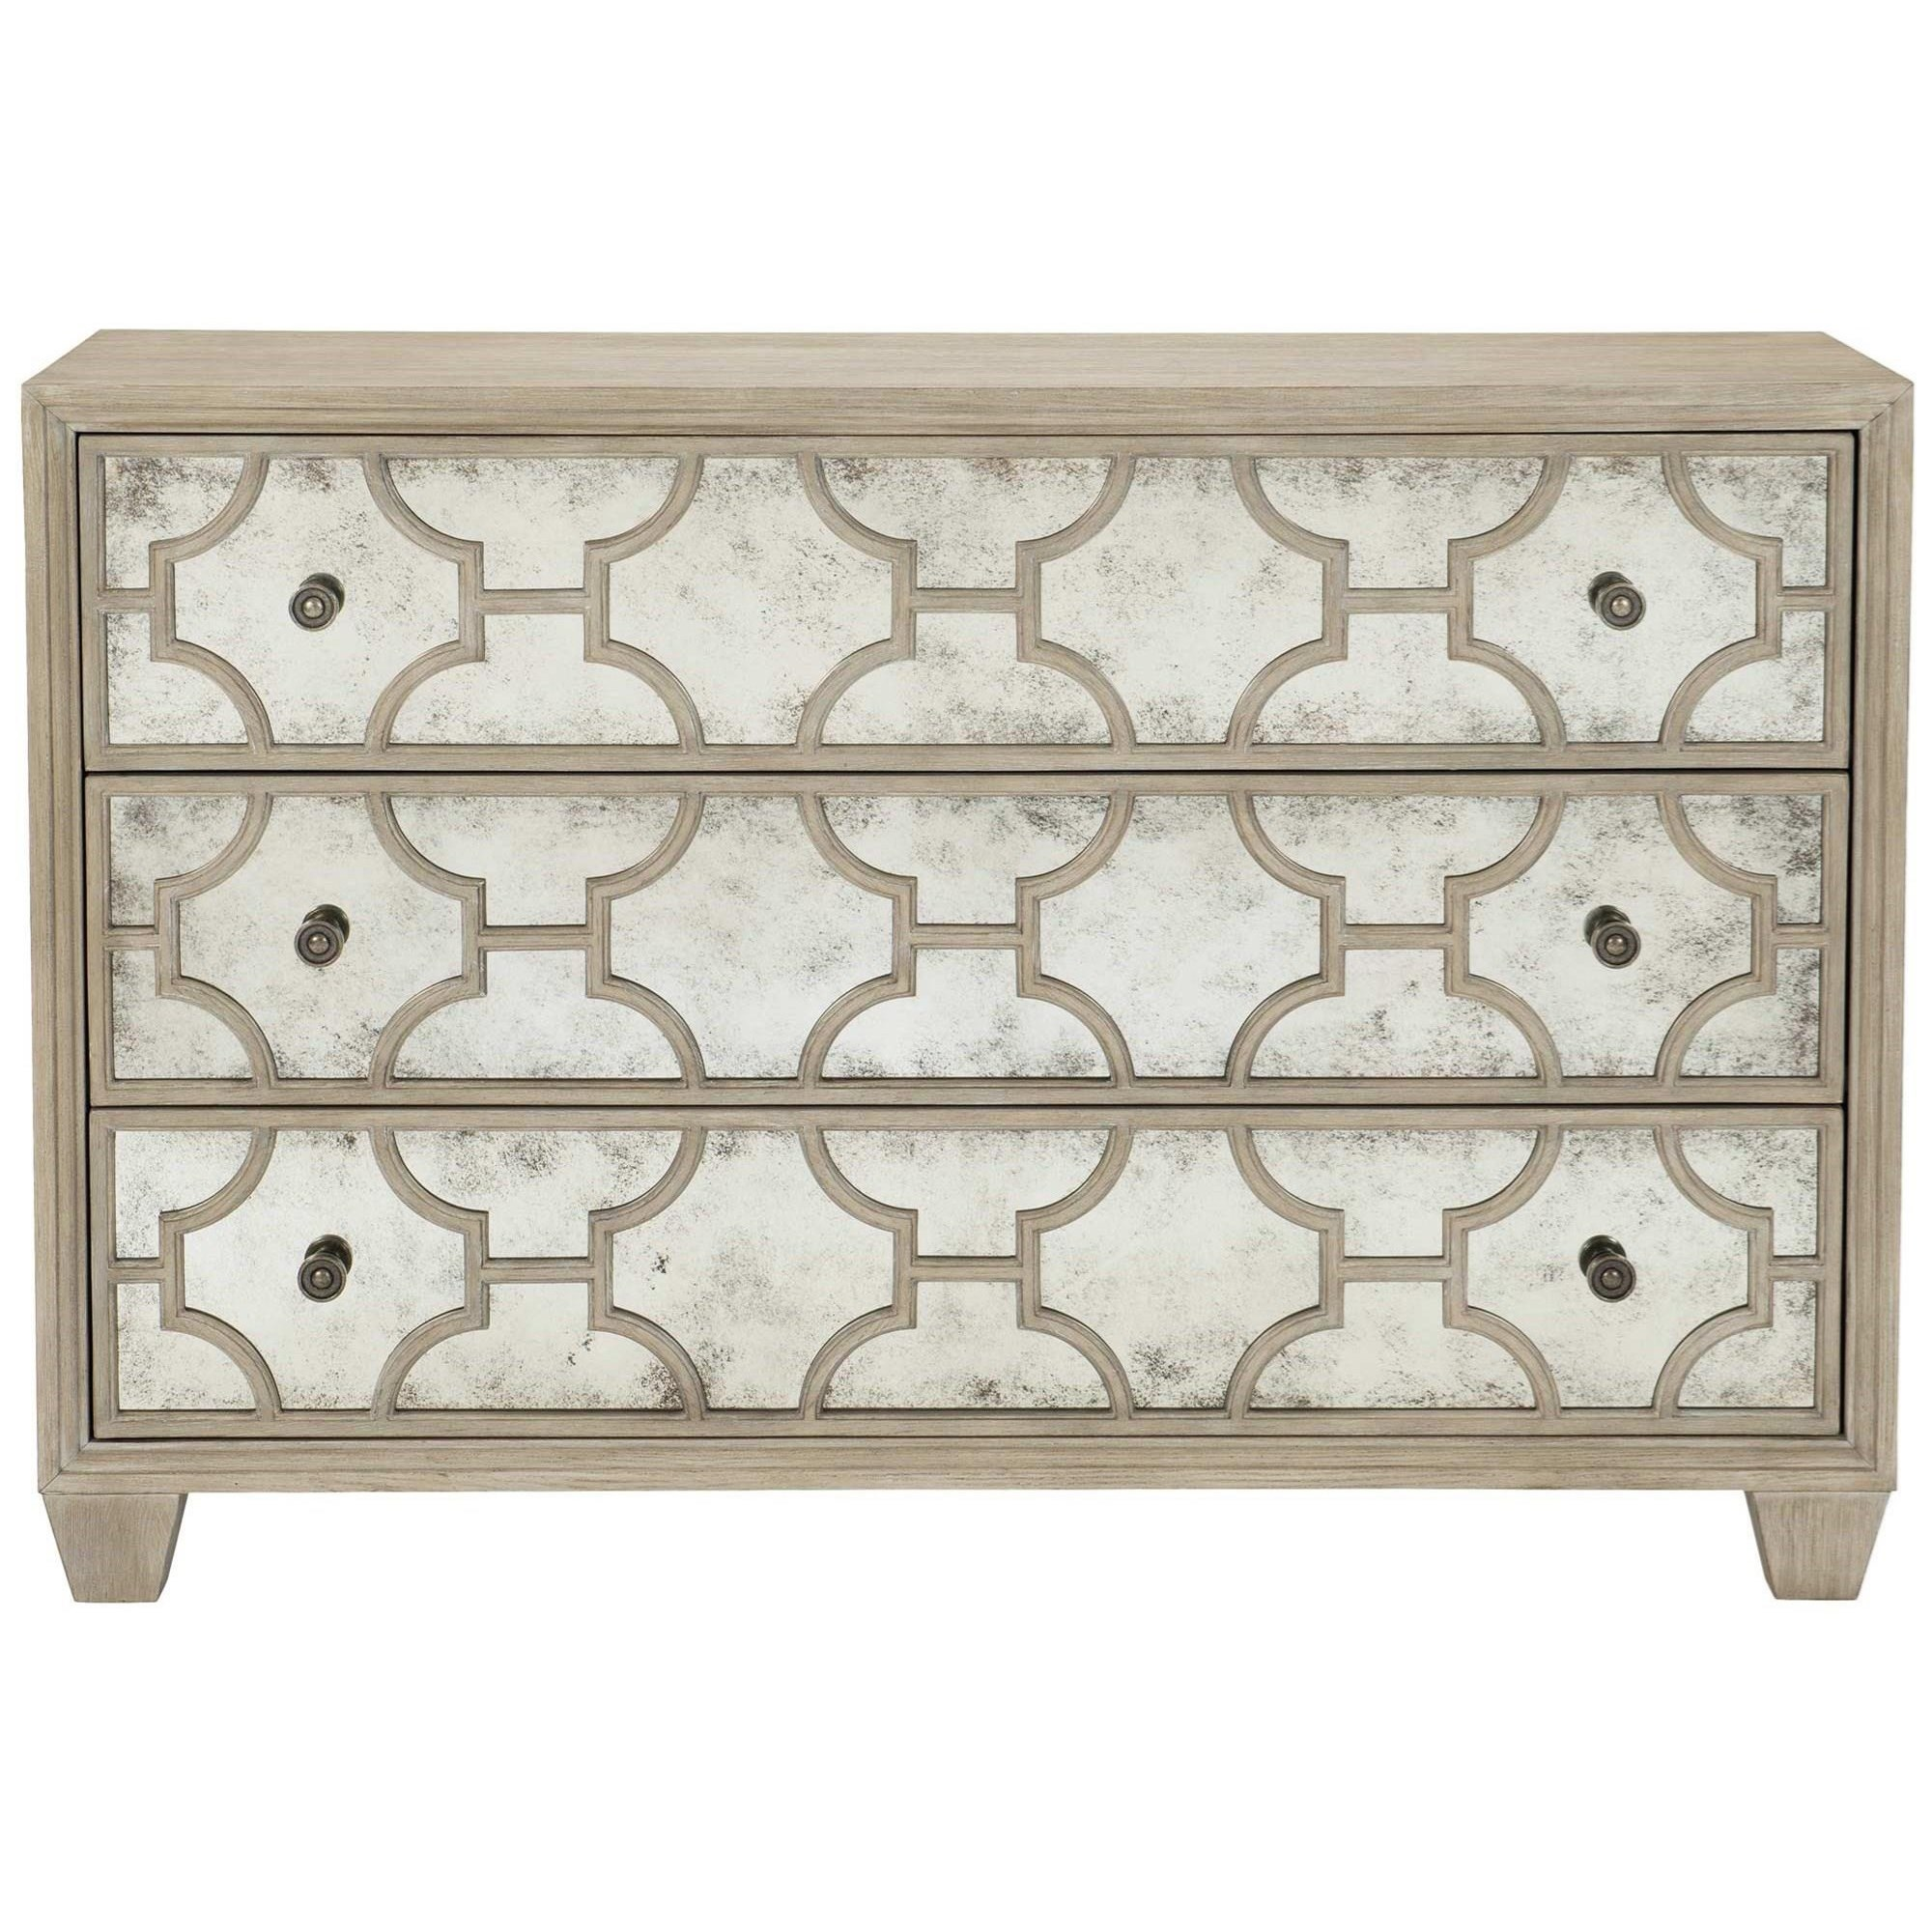 Transitional 3-Drawer Chest with Mirrored Fronts